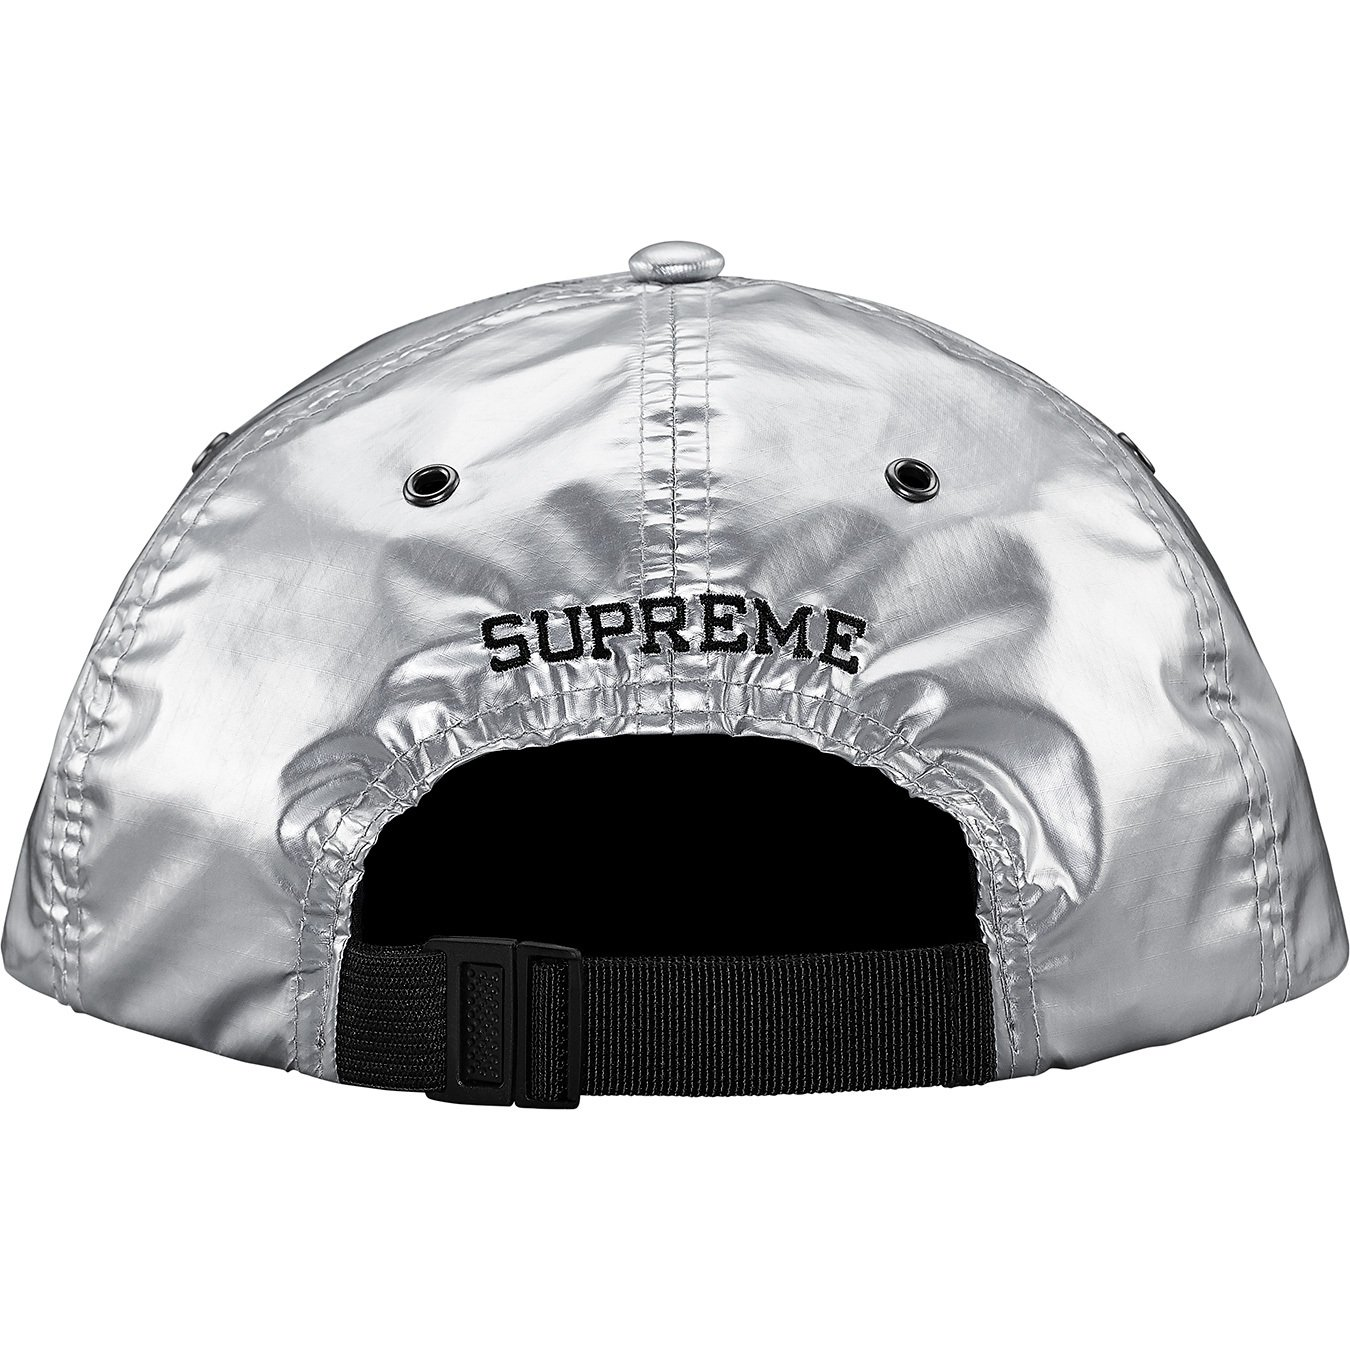 supreme-the-north-face-18ss-release-week7-20180407-metallic-6-panel-hat